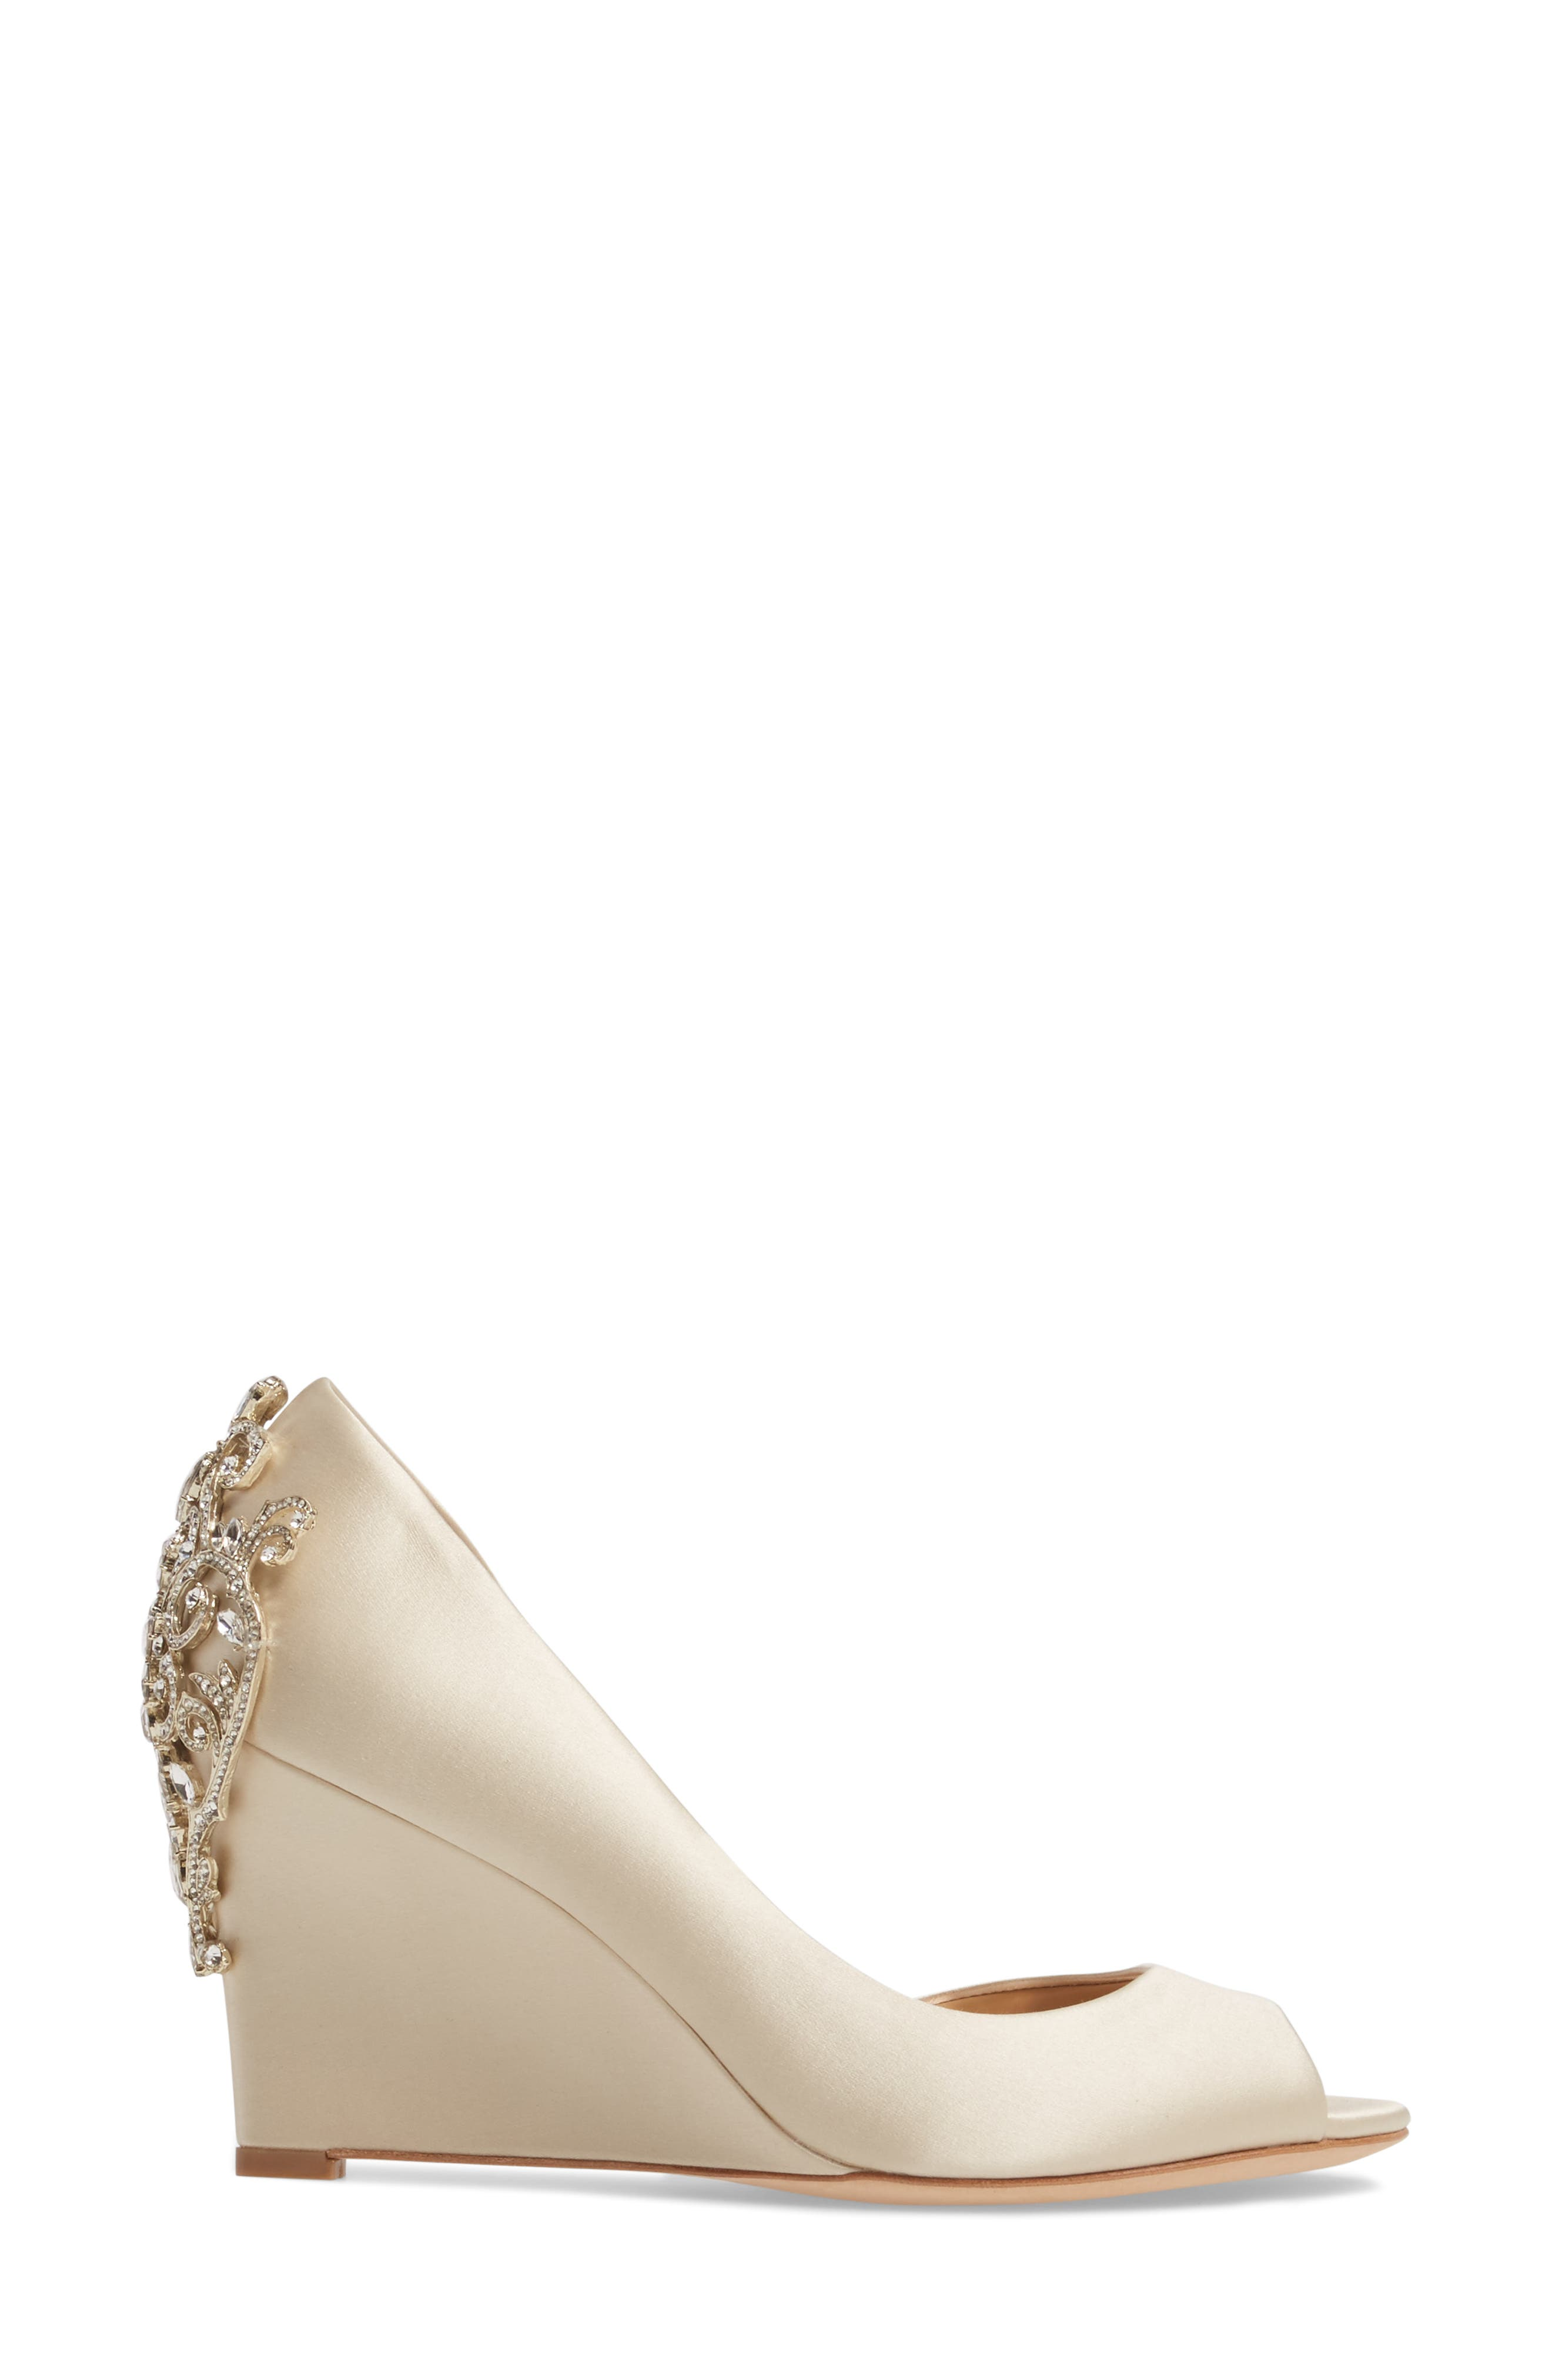 Meagan Embellished Peep Toe Wedge,                             Alternate thumbnail 3, color,                             IVORY SATIN